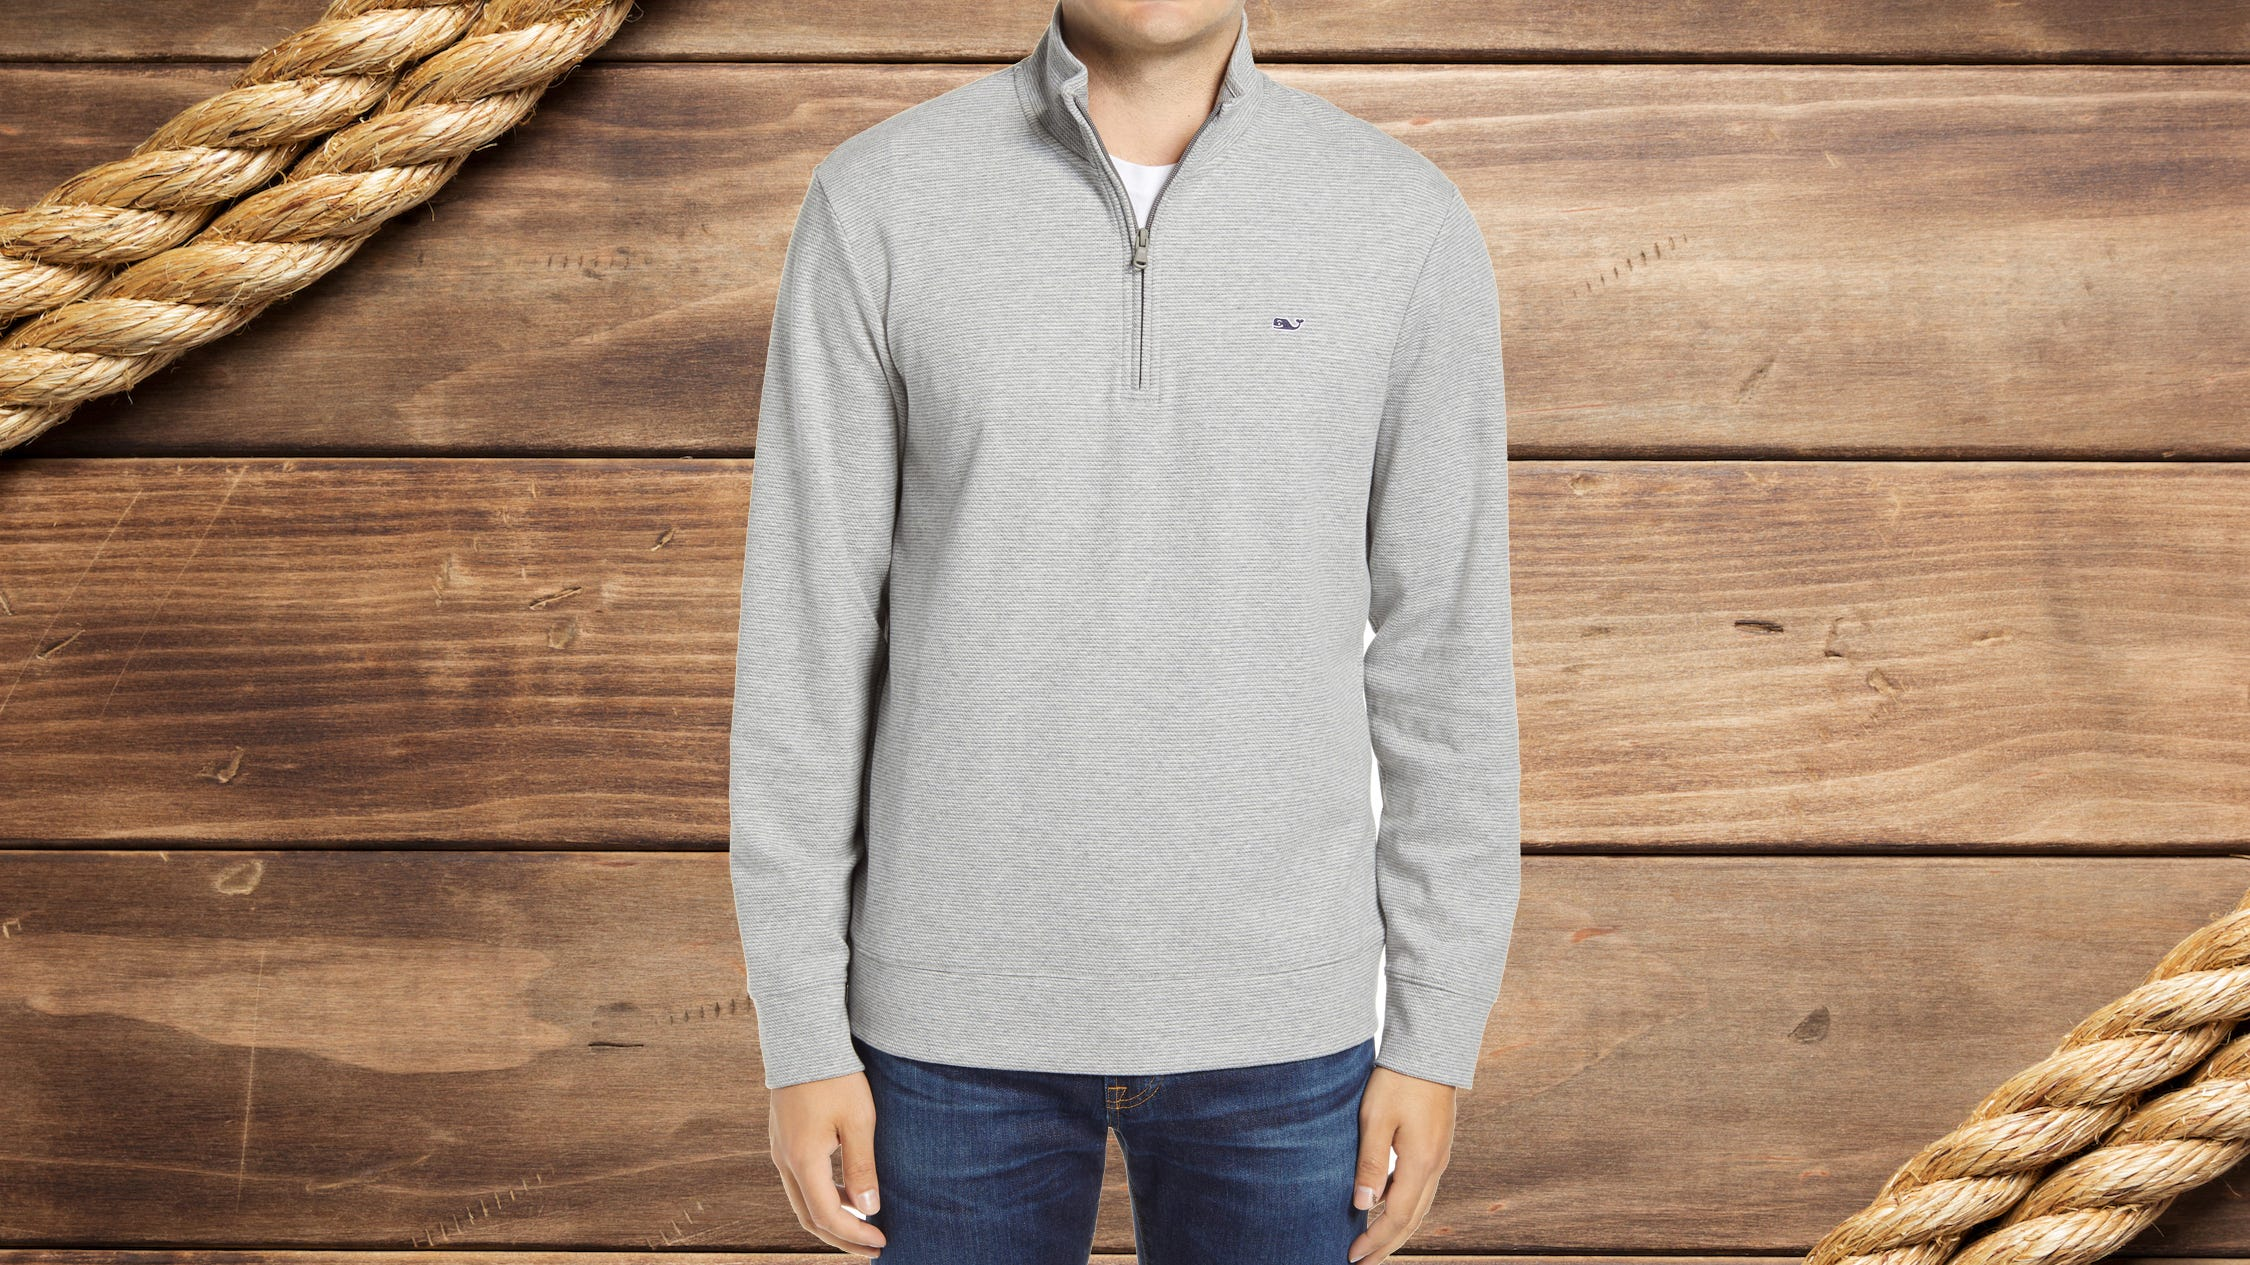 Save big on men's apparel from Vineyard Vines